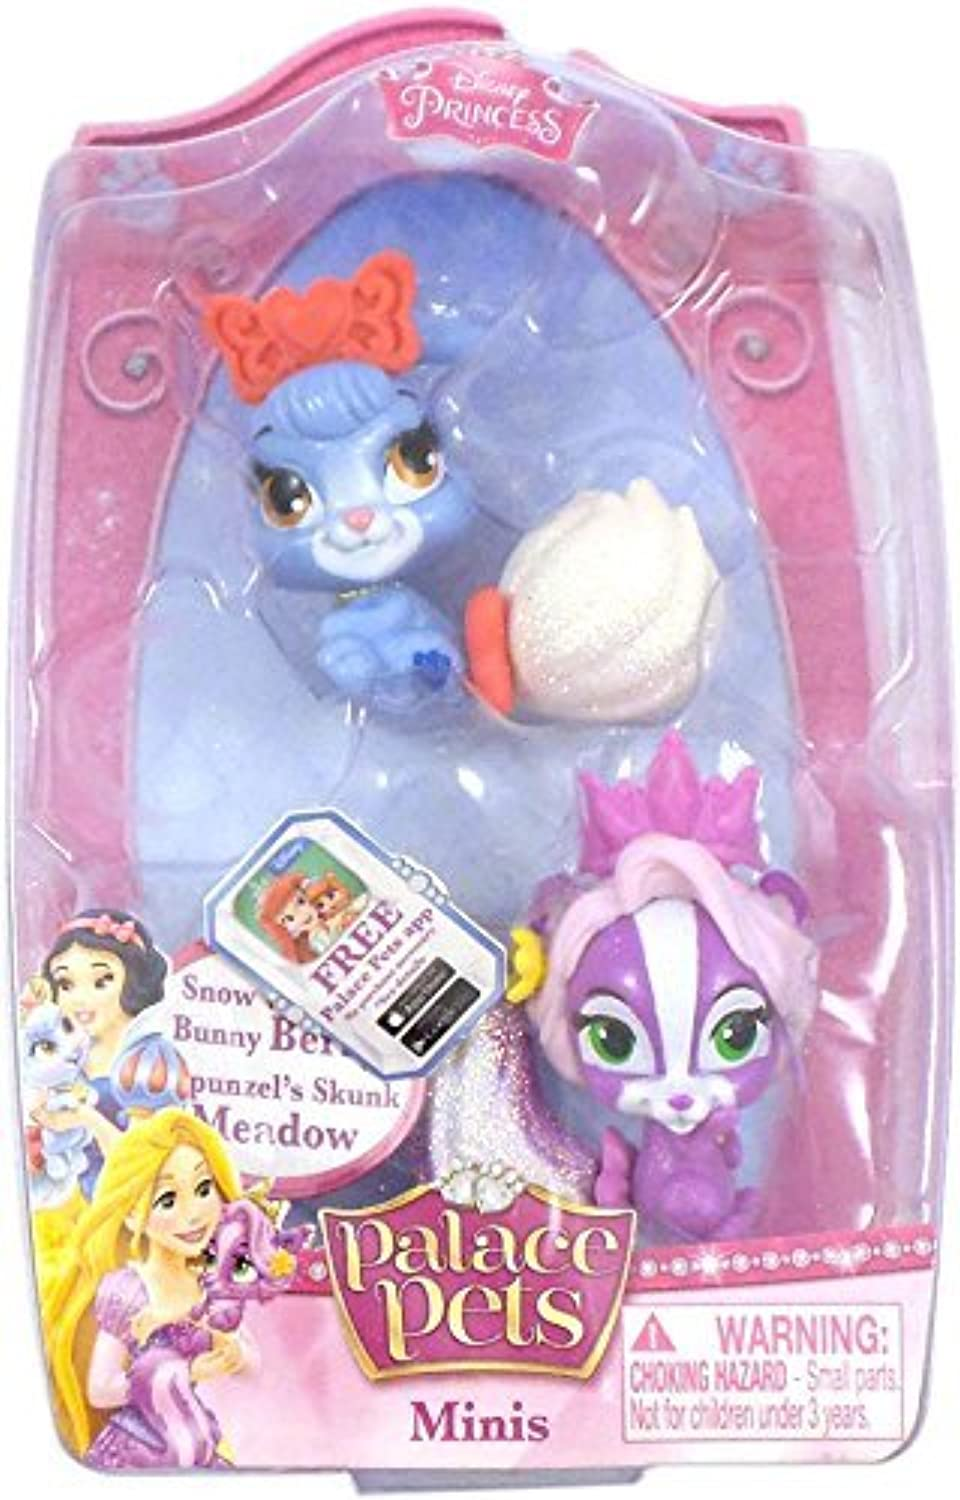 Palace Pets Minis 2 Figures  Snow White's Bunny Berry and Rapunzel's Skunk Meadow